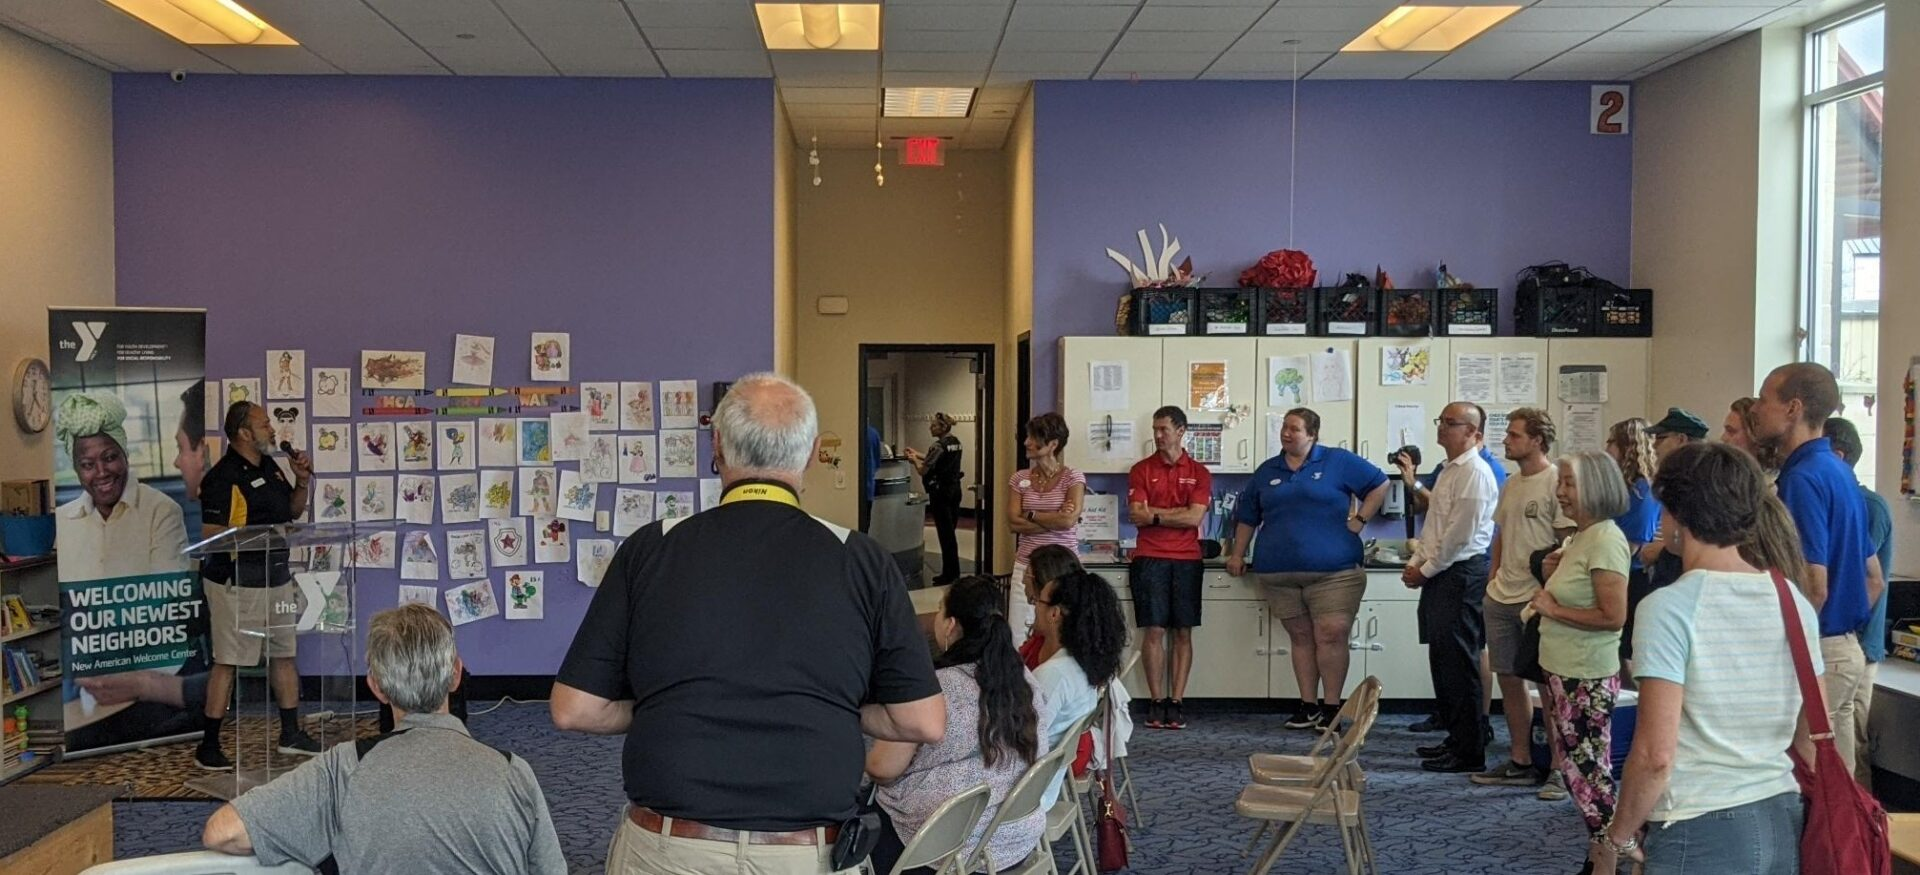 Director Jose Santiago speaks to YMCA and Lancaster community leaders at the opening of the New American Welcome Center at the Center City YMCA in Lancaster on Thursday, July 8, 2021. (Source: OUL)